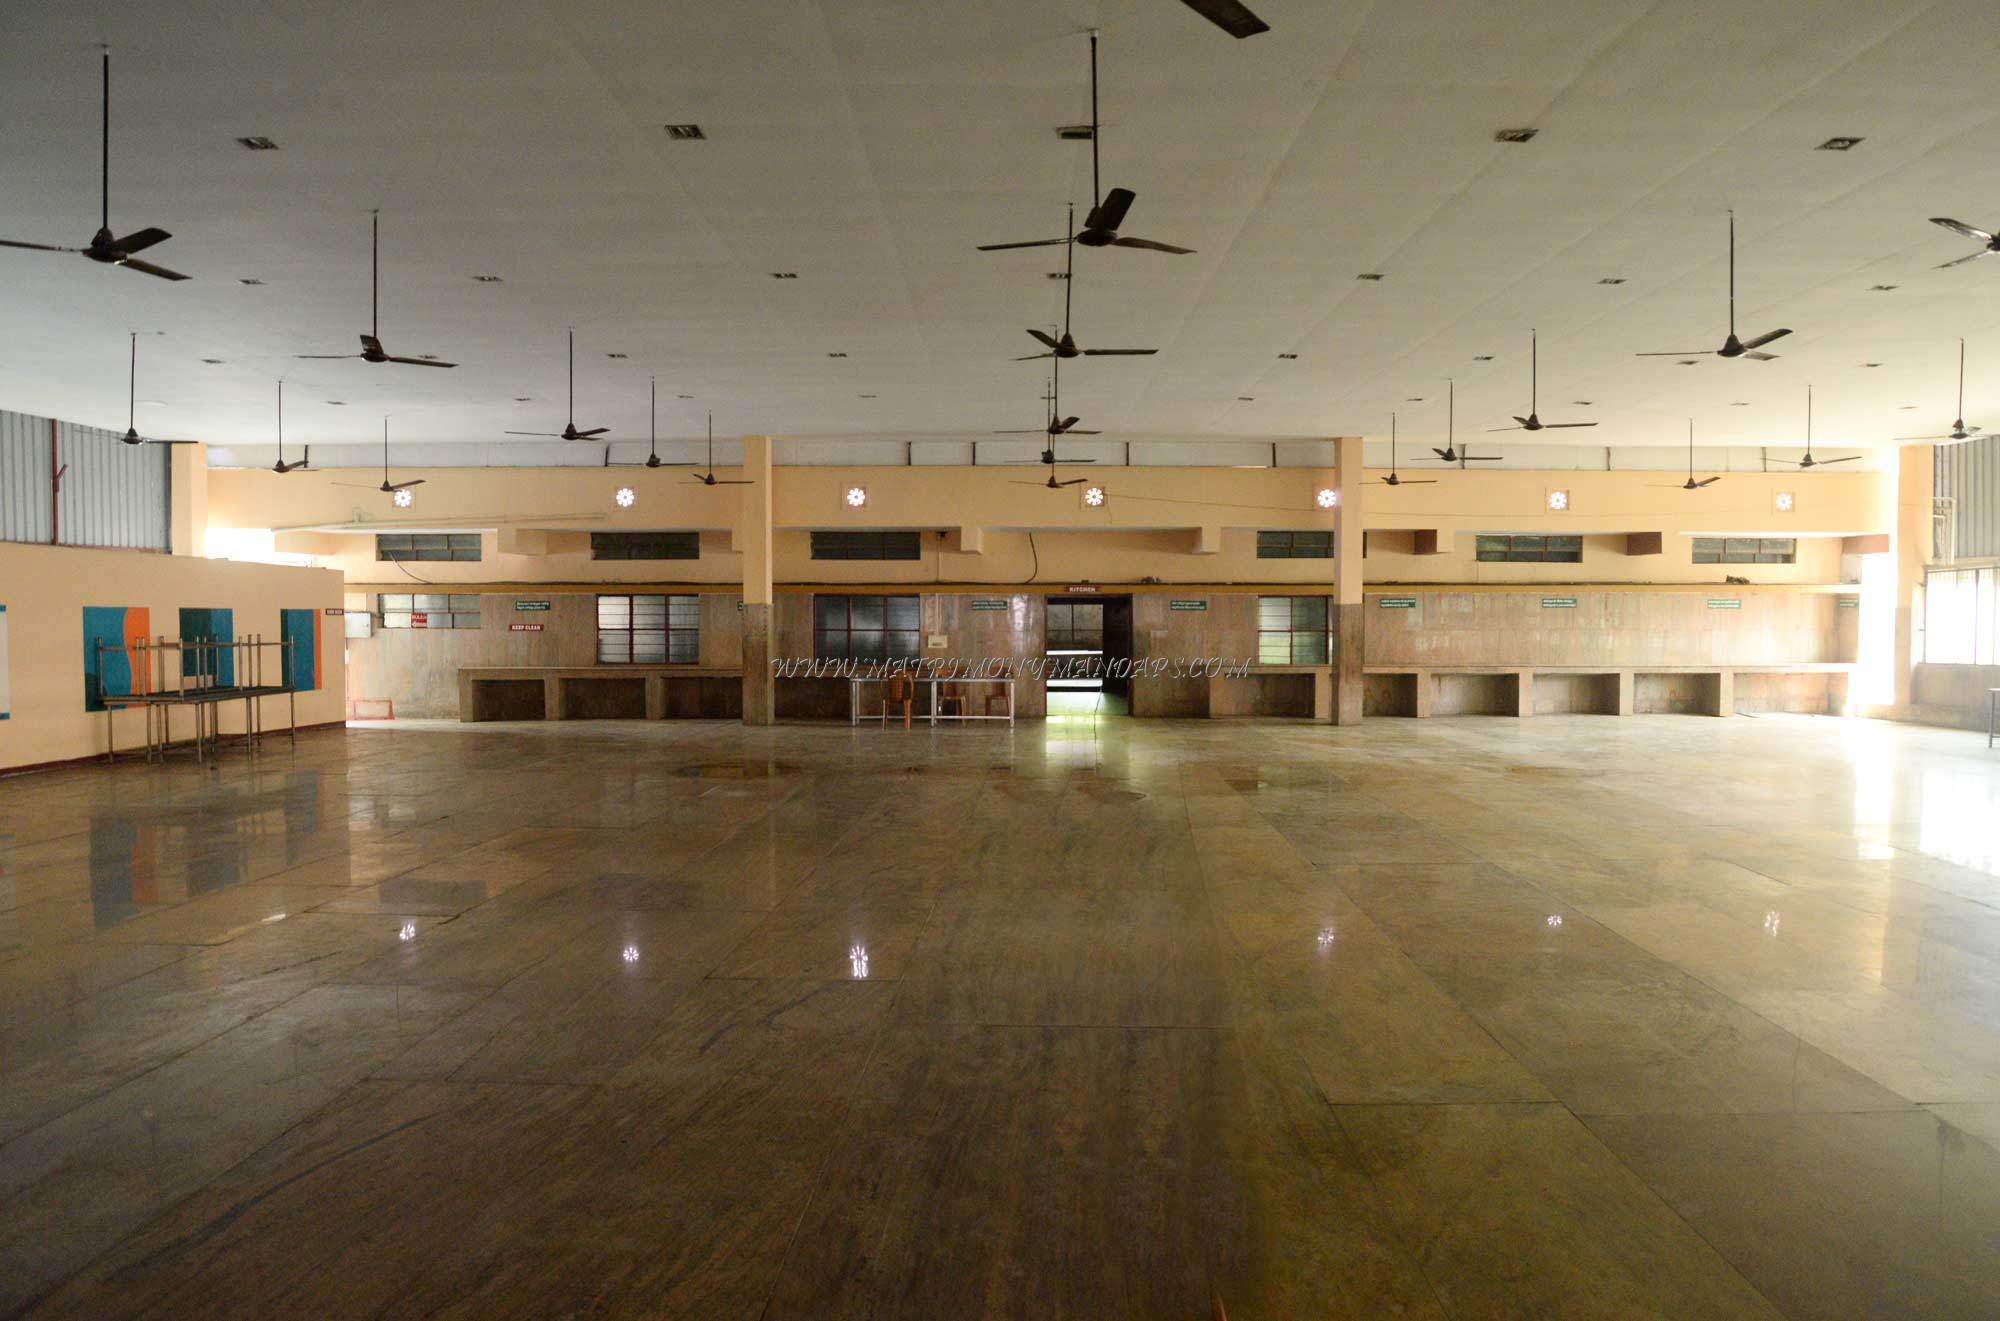 Find the availability of the RVS Senthil Andavar Thirumana Mandapam in Sulur, Coimbatore and avail special offers